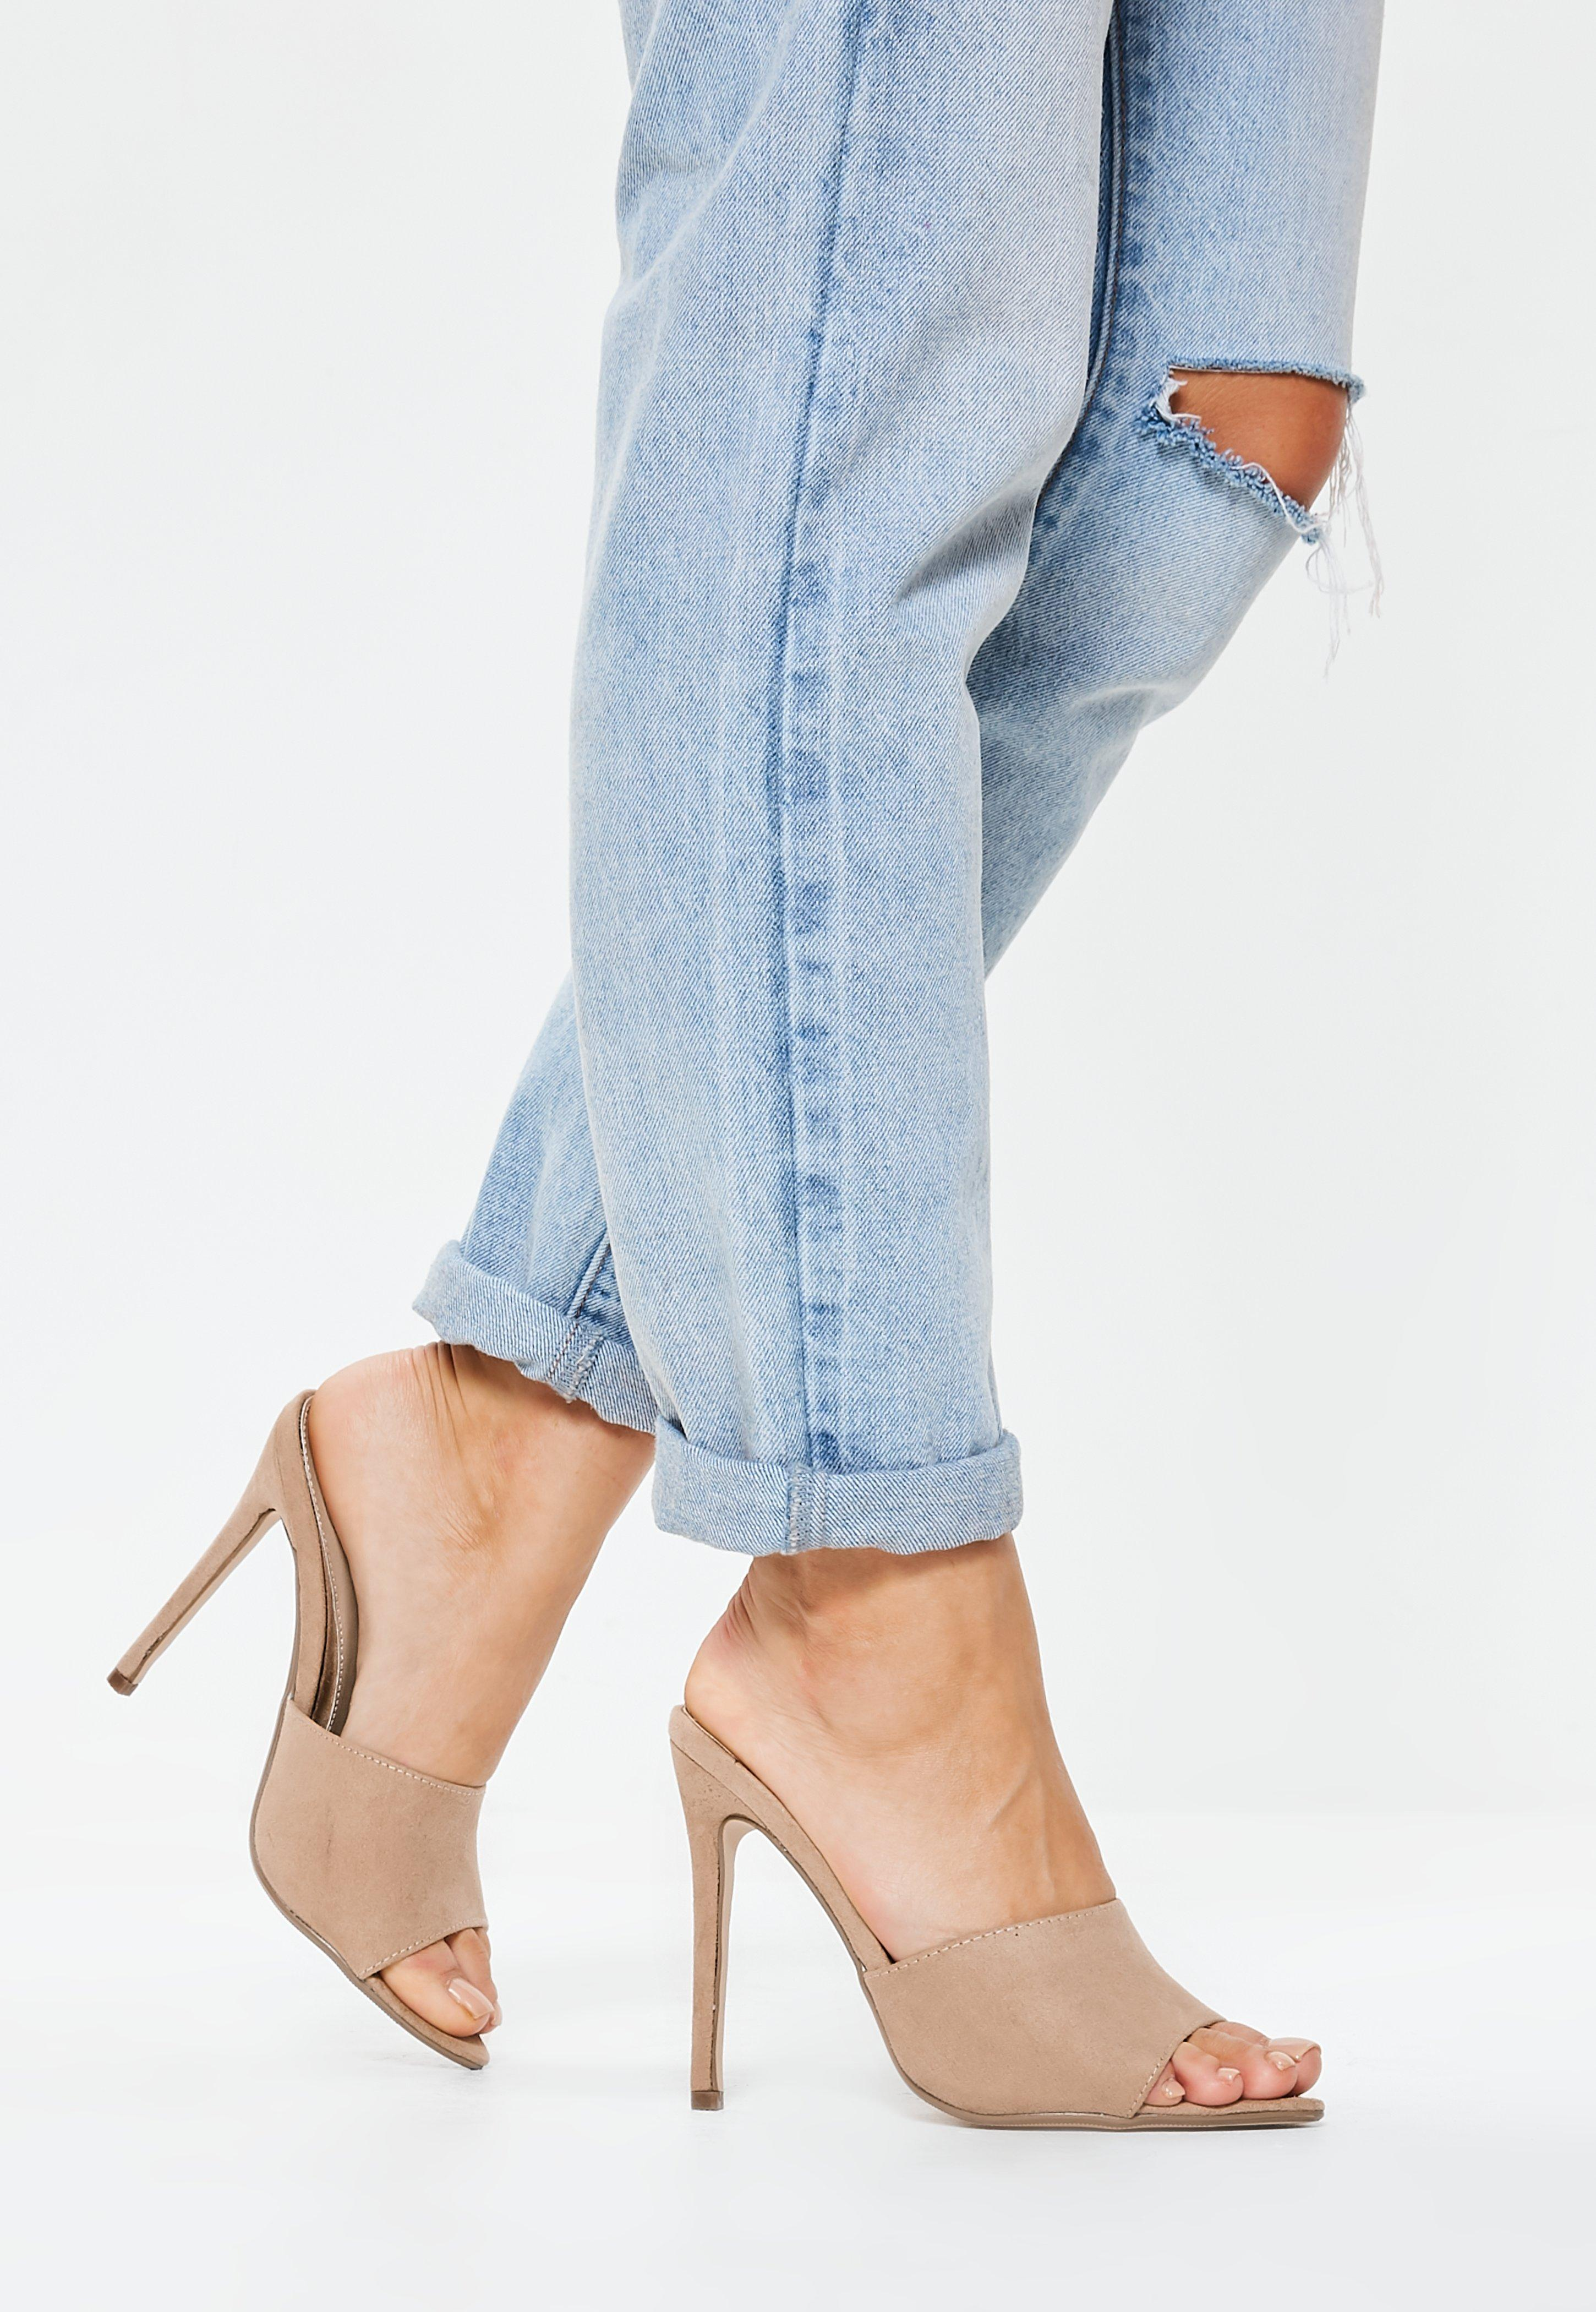 cc42255a56 Lyst - Missguided Nude Faux Suede Peep Toe Mules in Blue